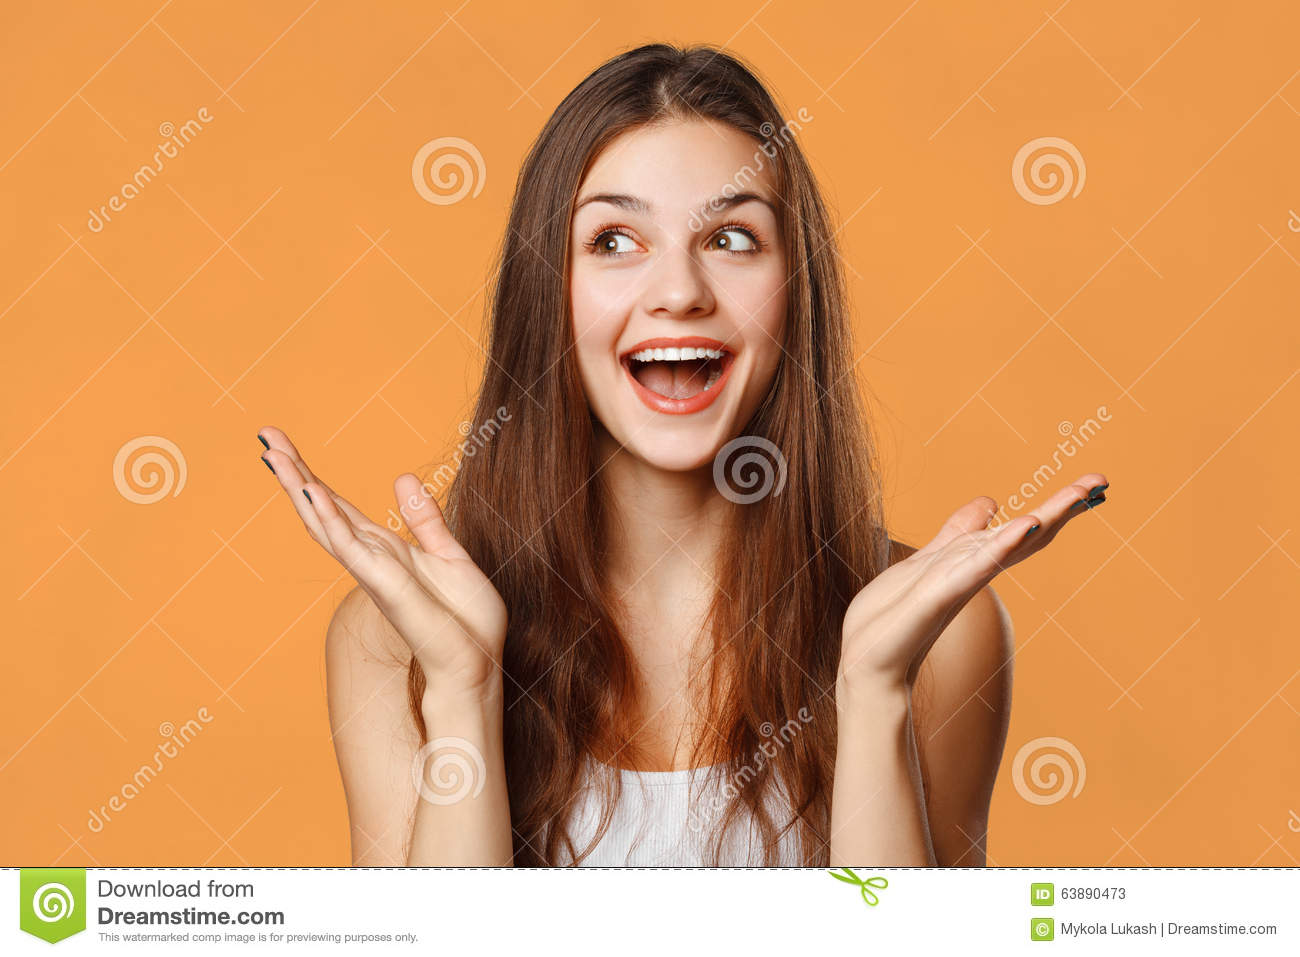 Download Surprised Happy Beautiful Woman Looking Sideways In Excitement. Isolated On Orange Background Stock Image - Image of european, expression: 63890473